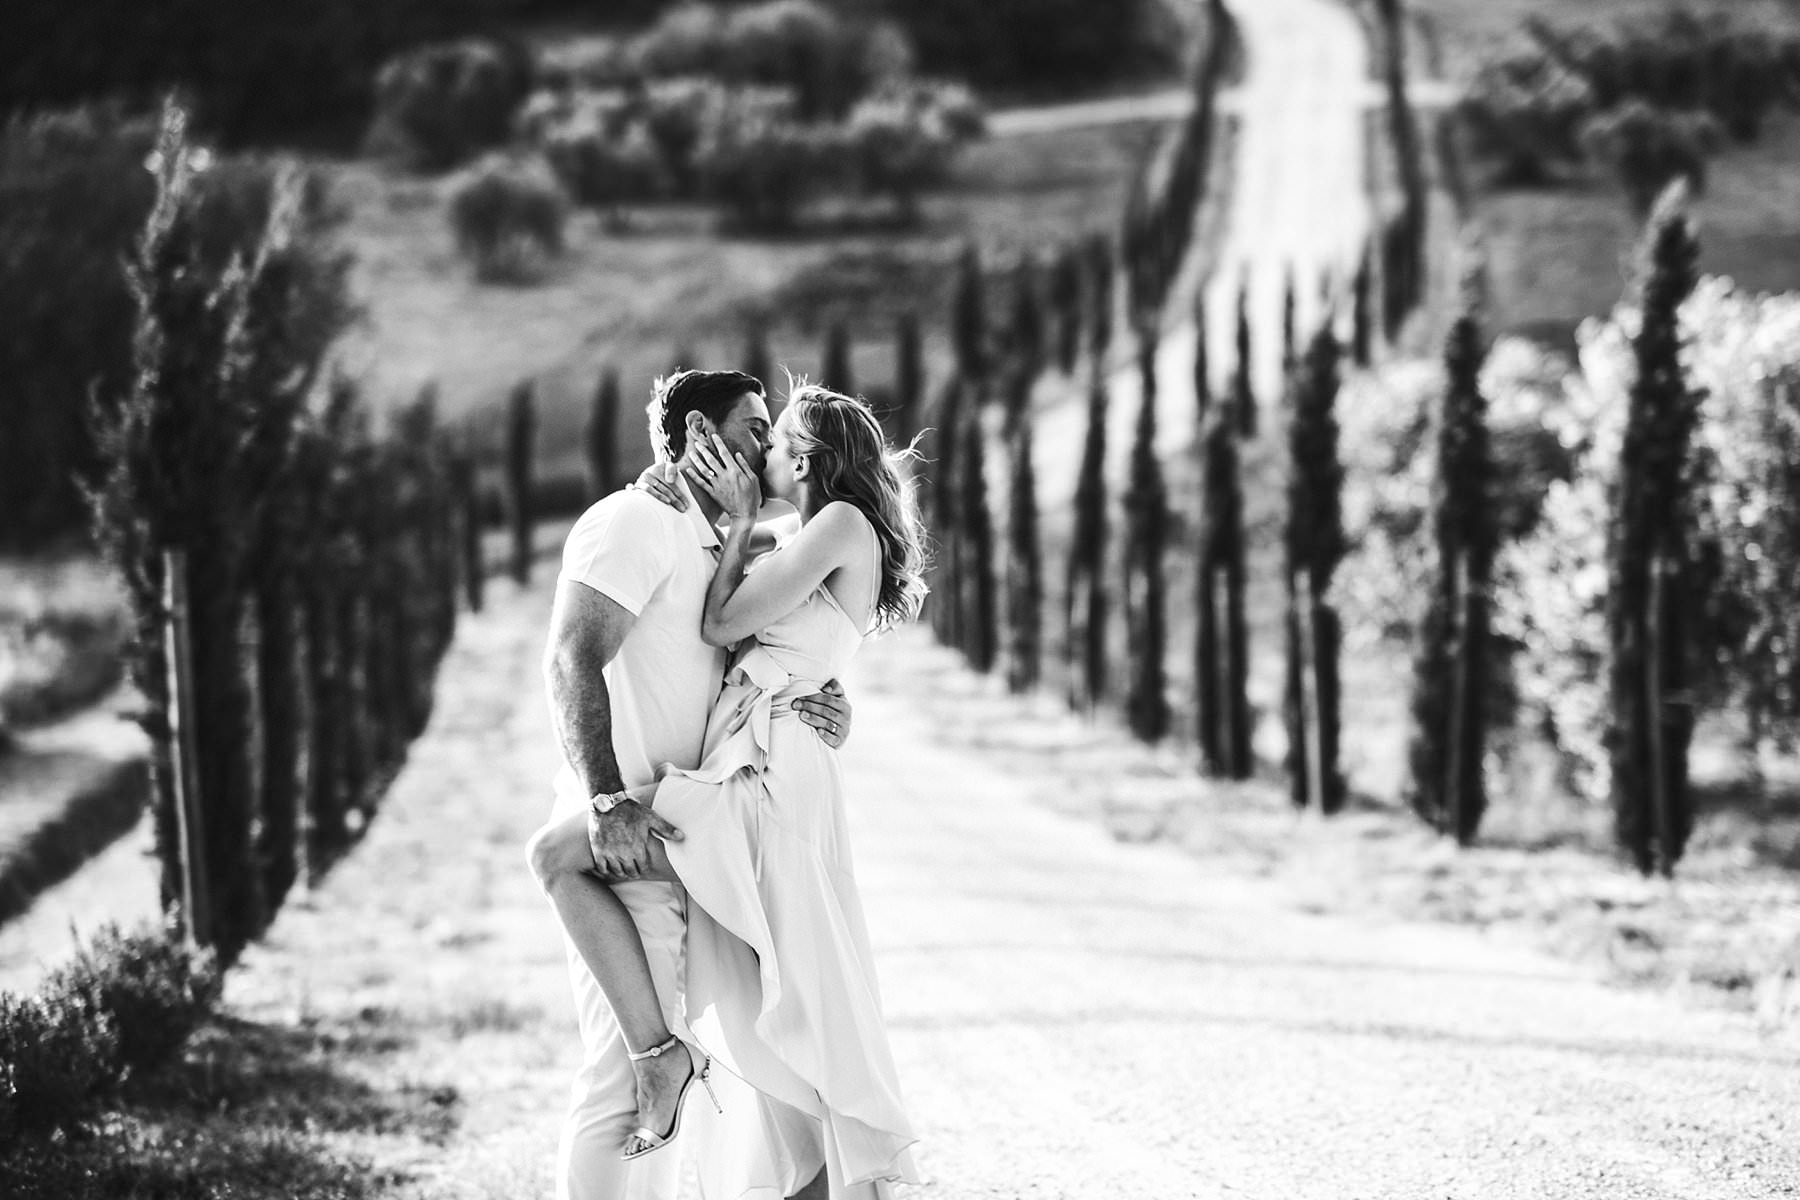 Dreamy Italy elopement with vows renewal in Val d'Orcia. Stunning couple portrait during elopement photo session in Val D'Orcia area near Pienza